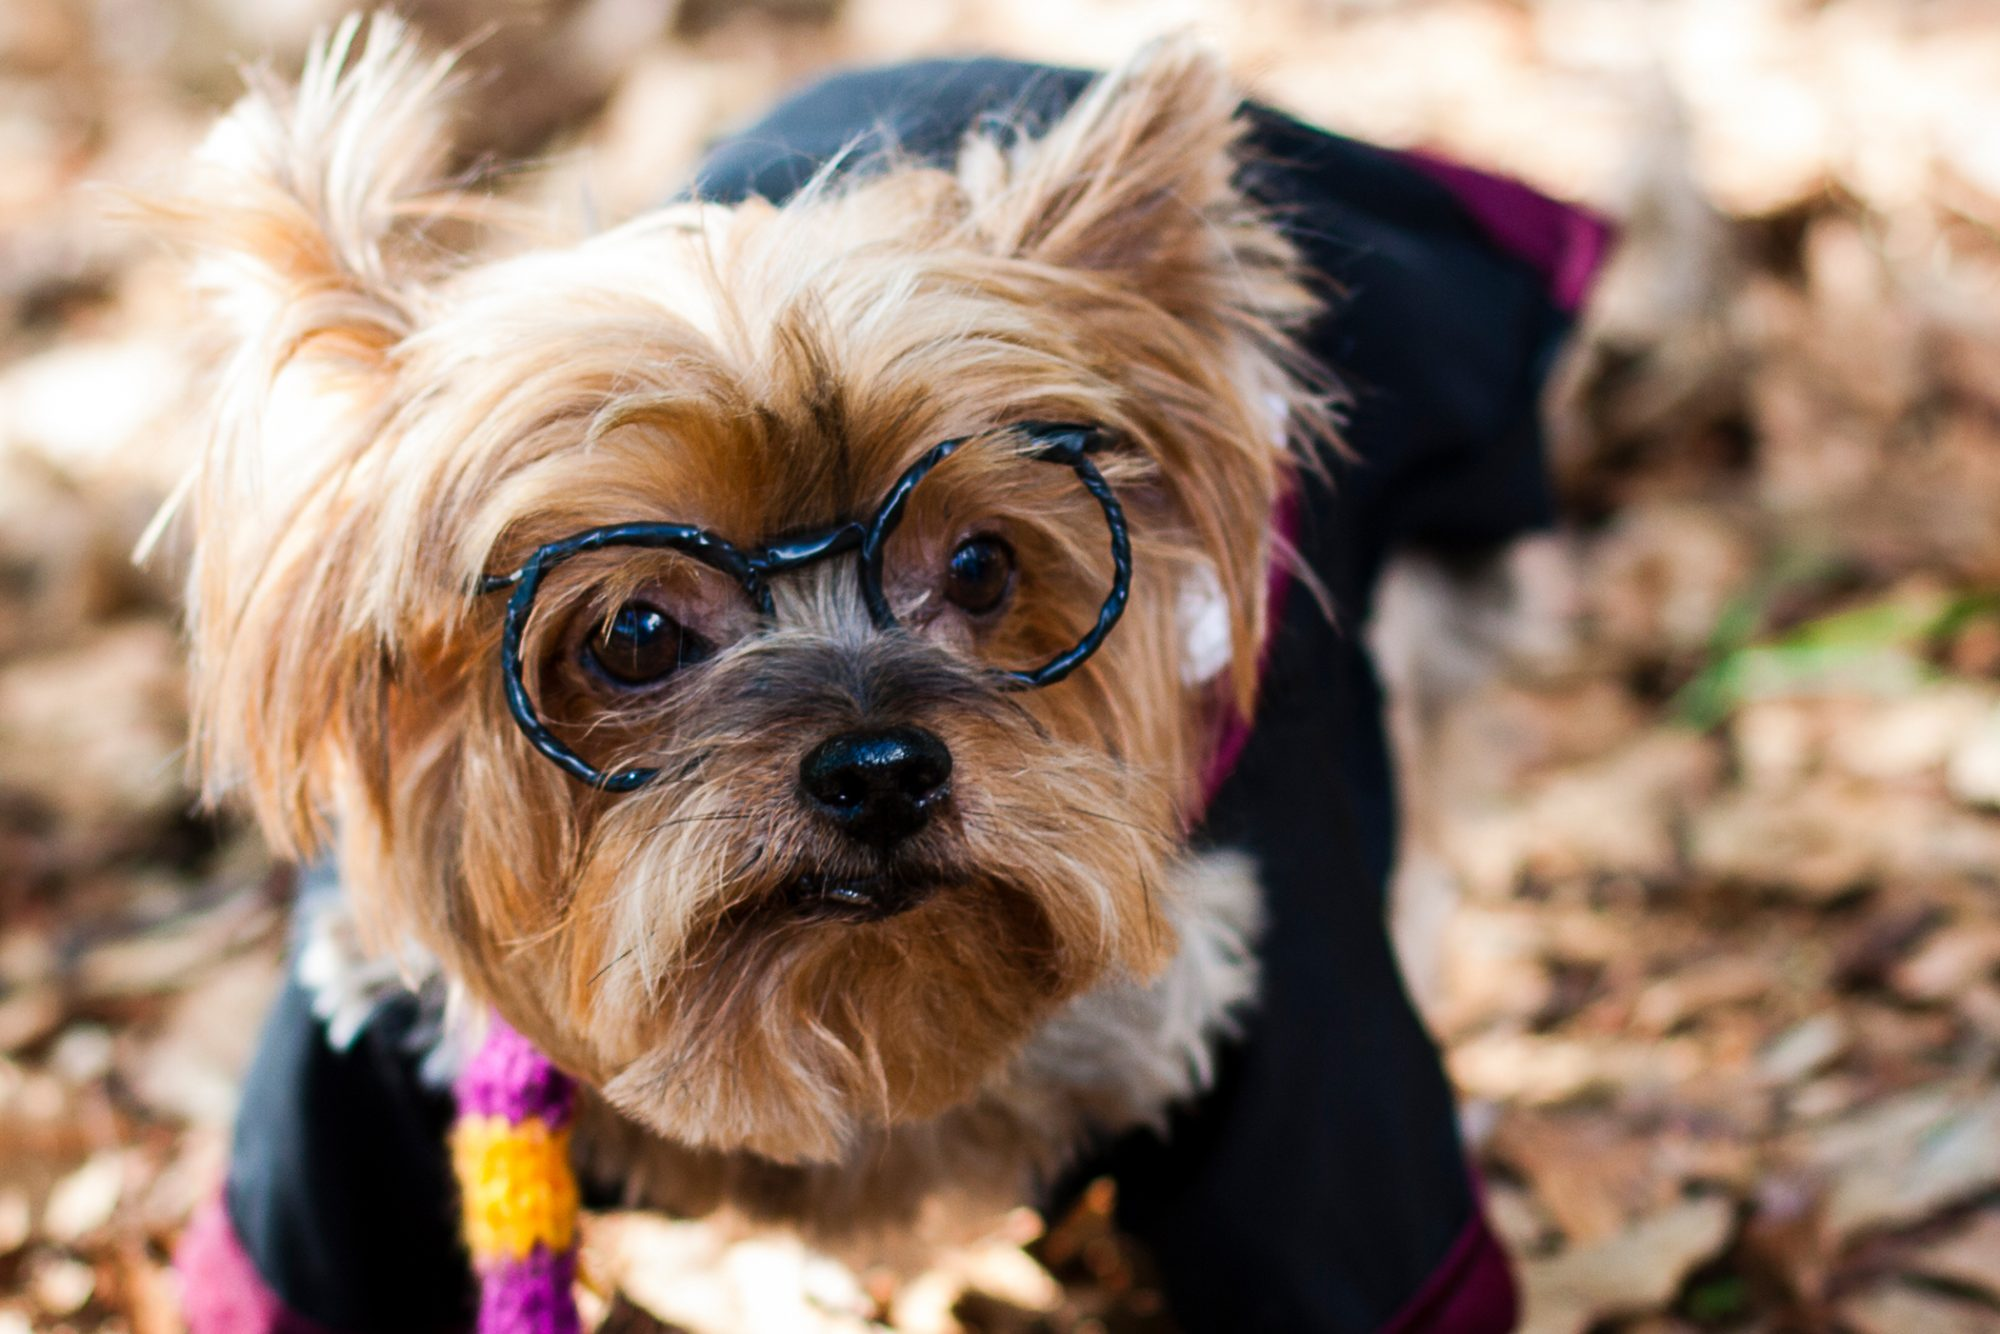 Small dog wears glasses and striped scarf, harry potter robe